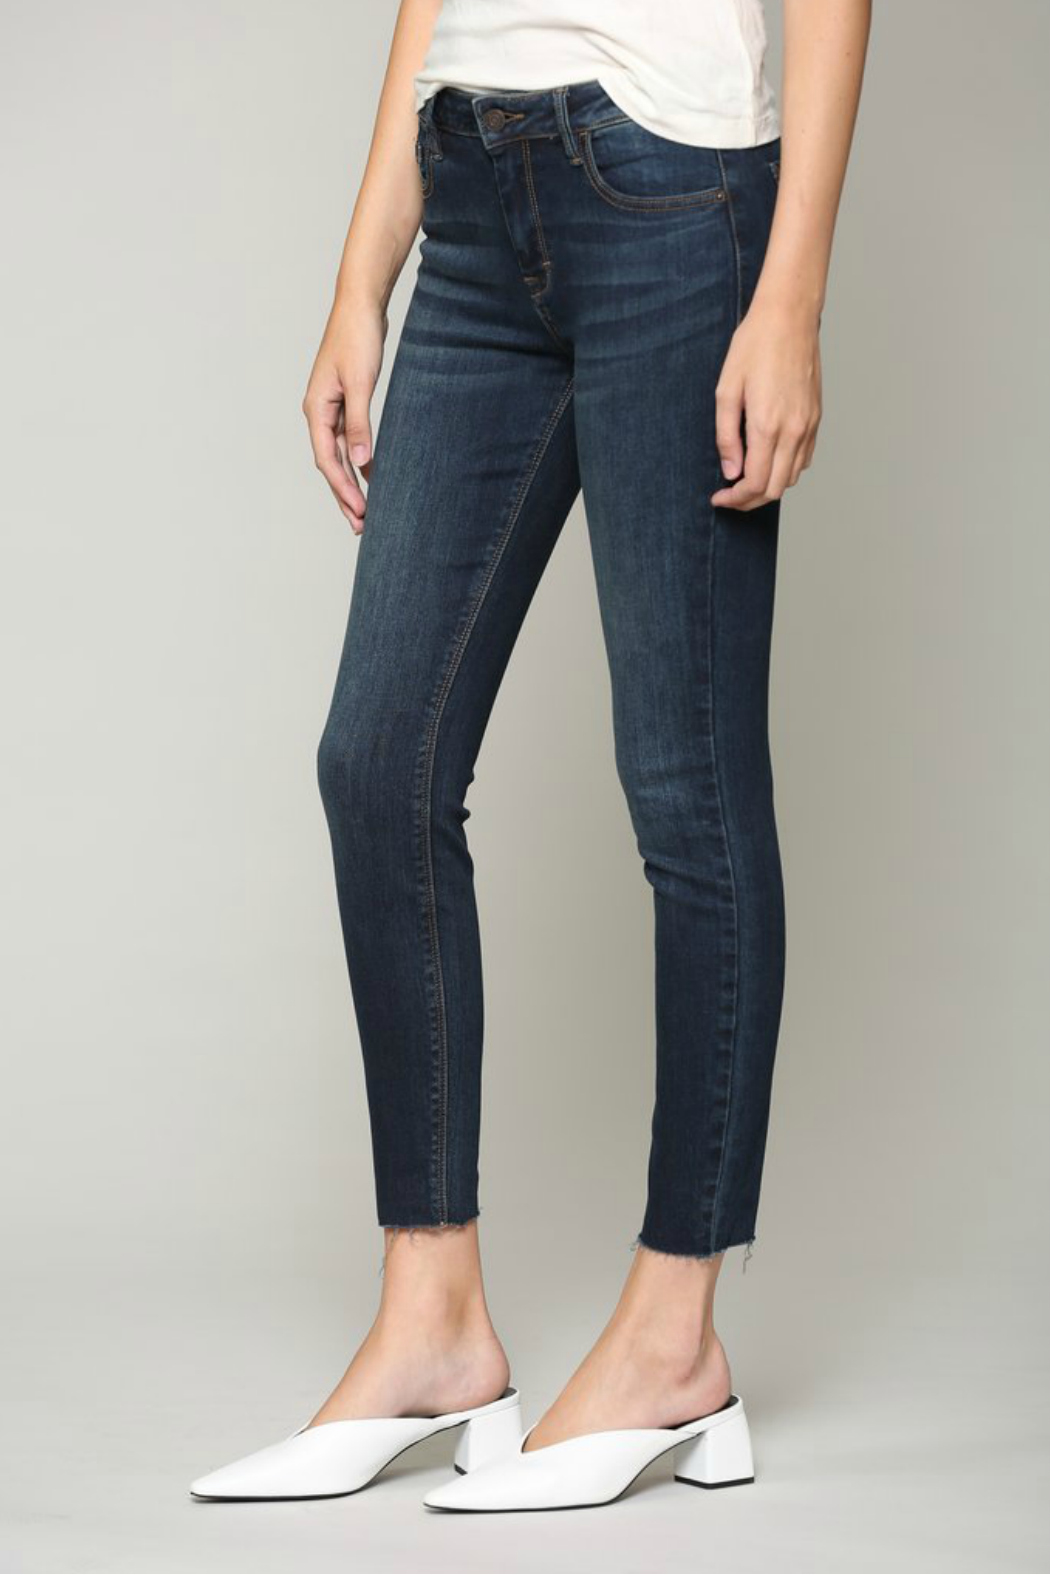 Hidden Jeans AMELIA DARK WASH SKINNY WITH A RAW HEM - Front Full Image